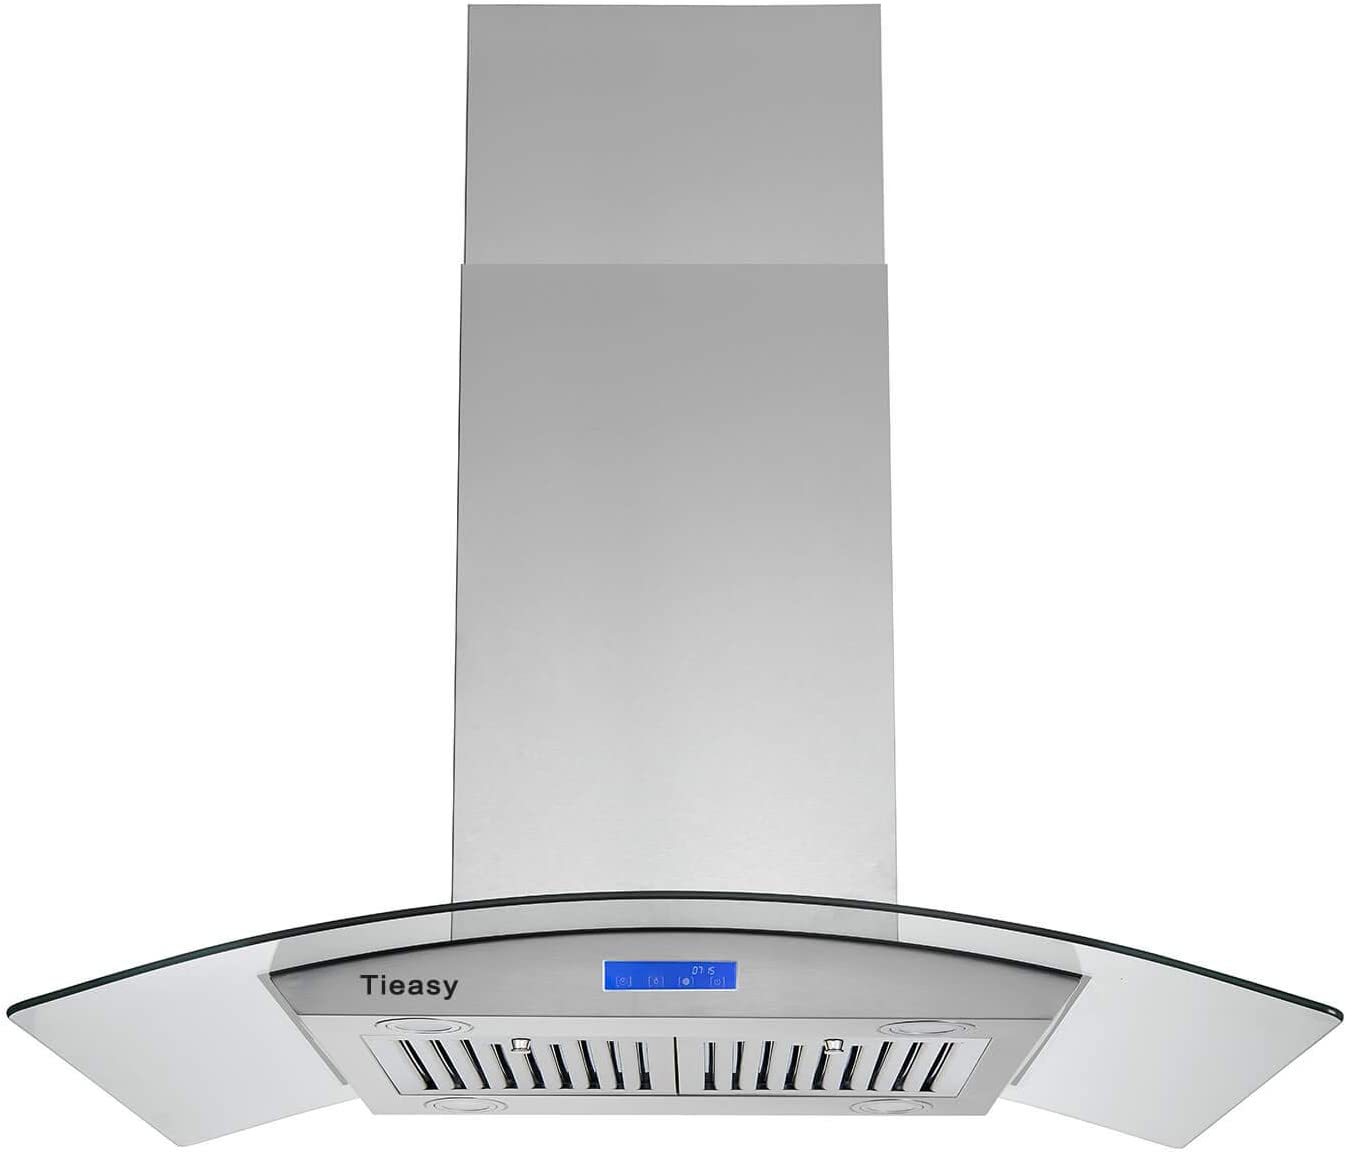 Island Range Hood 36 inch 700 CFM Ceiling Mount Kitchen Stove Hood Ducted with Tempered Glass 4 LED Lights Touch Control 3 Speed Fan Permanent Filters Tieasy